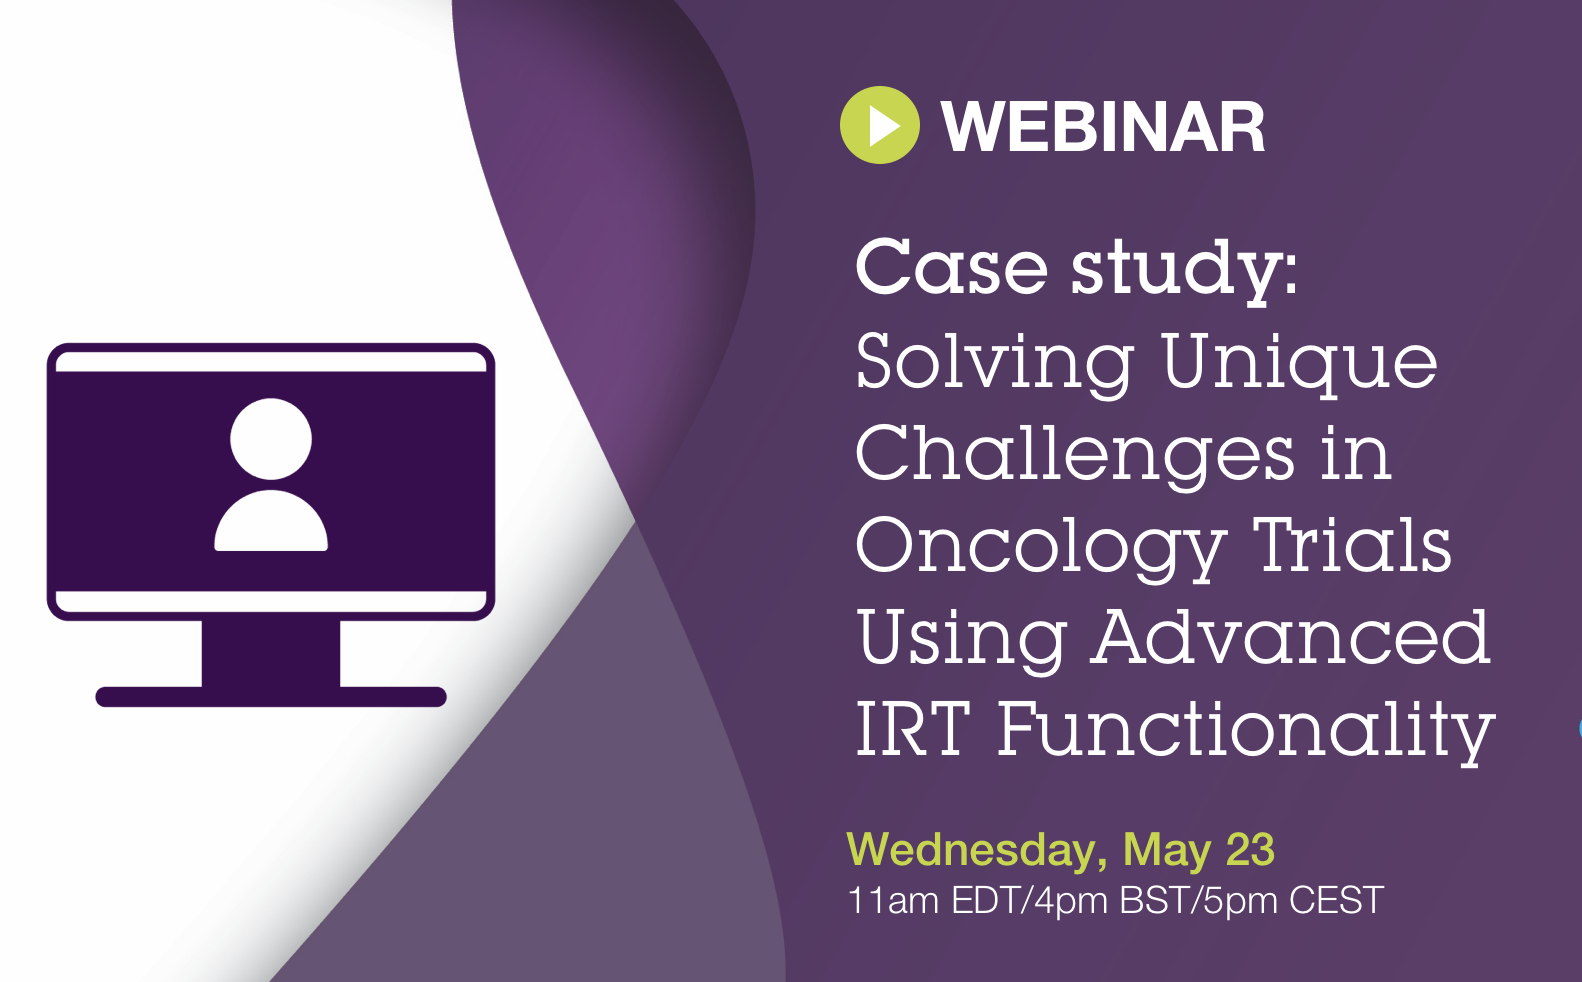 Webinar - Case Study: Solving Unique Challenges in Oncology Trials Using Advanced IRT Functionality